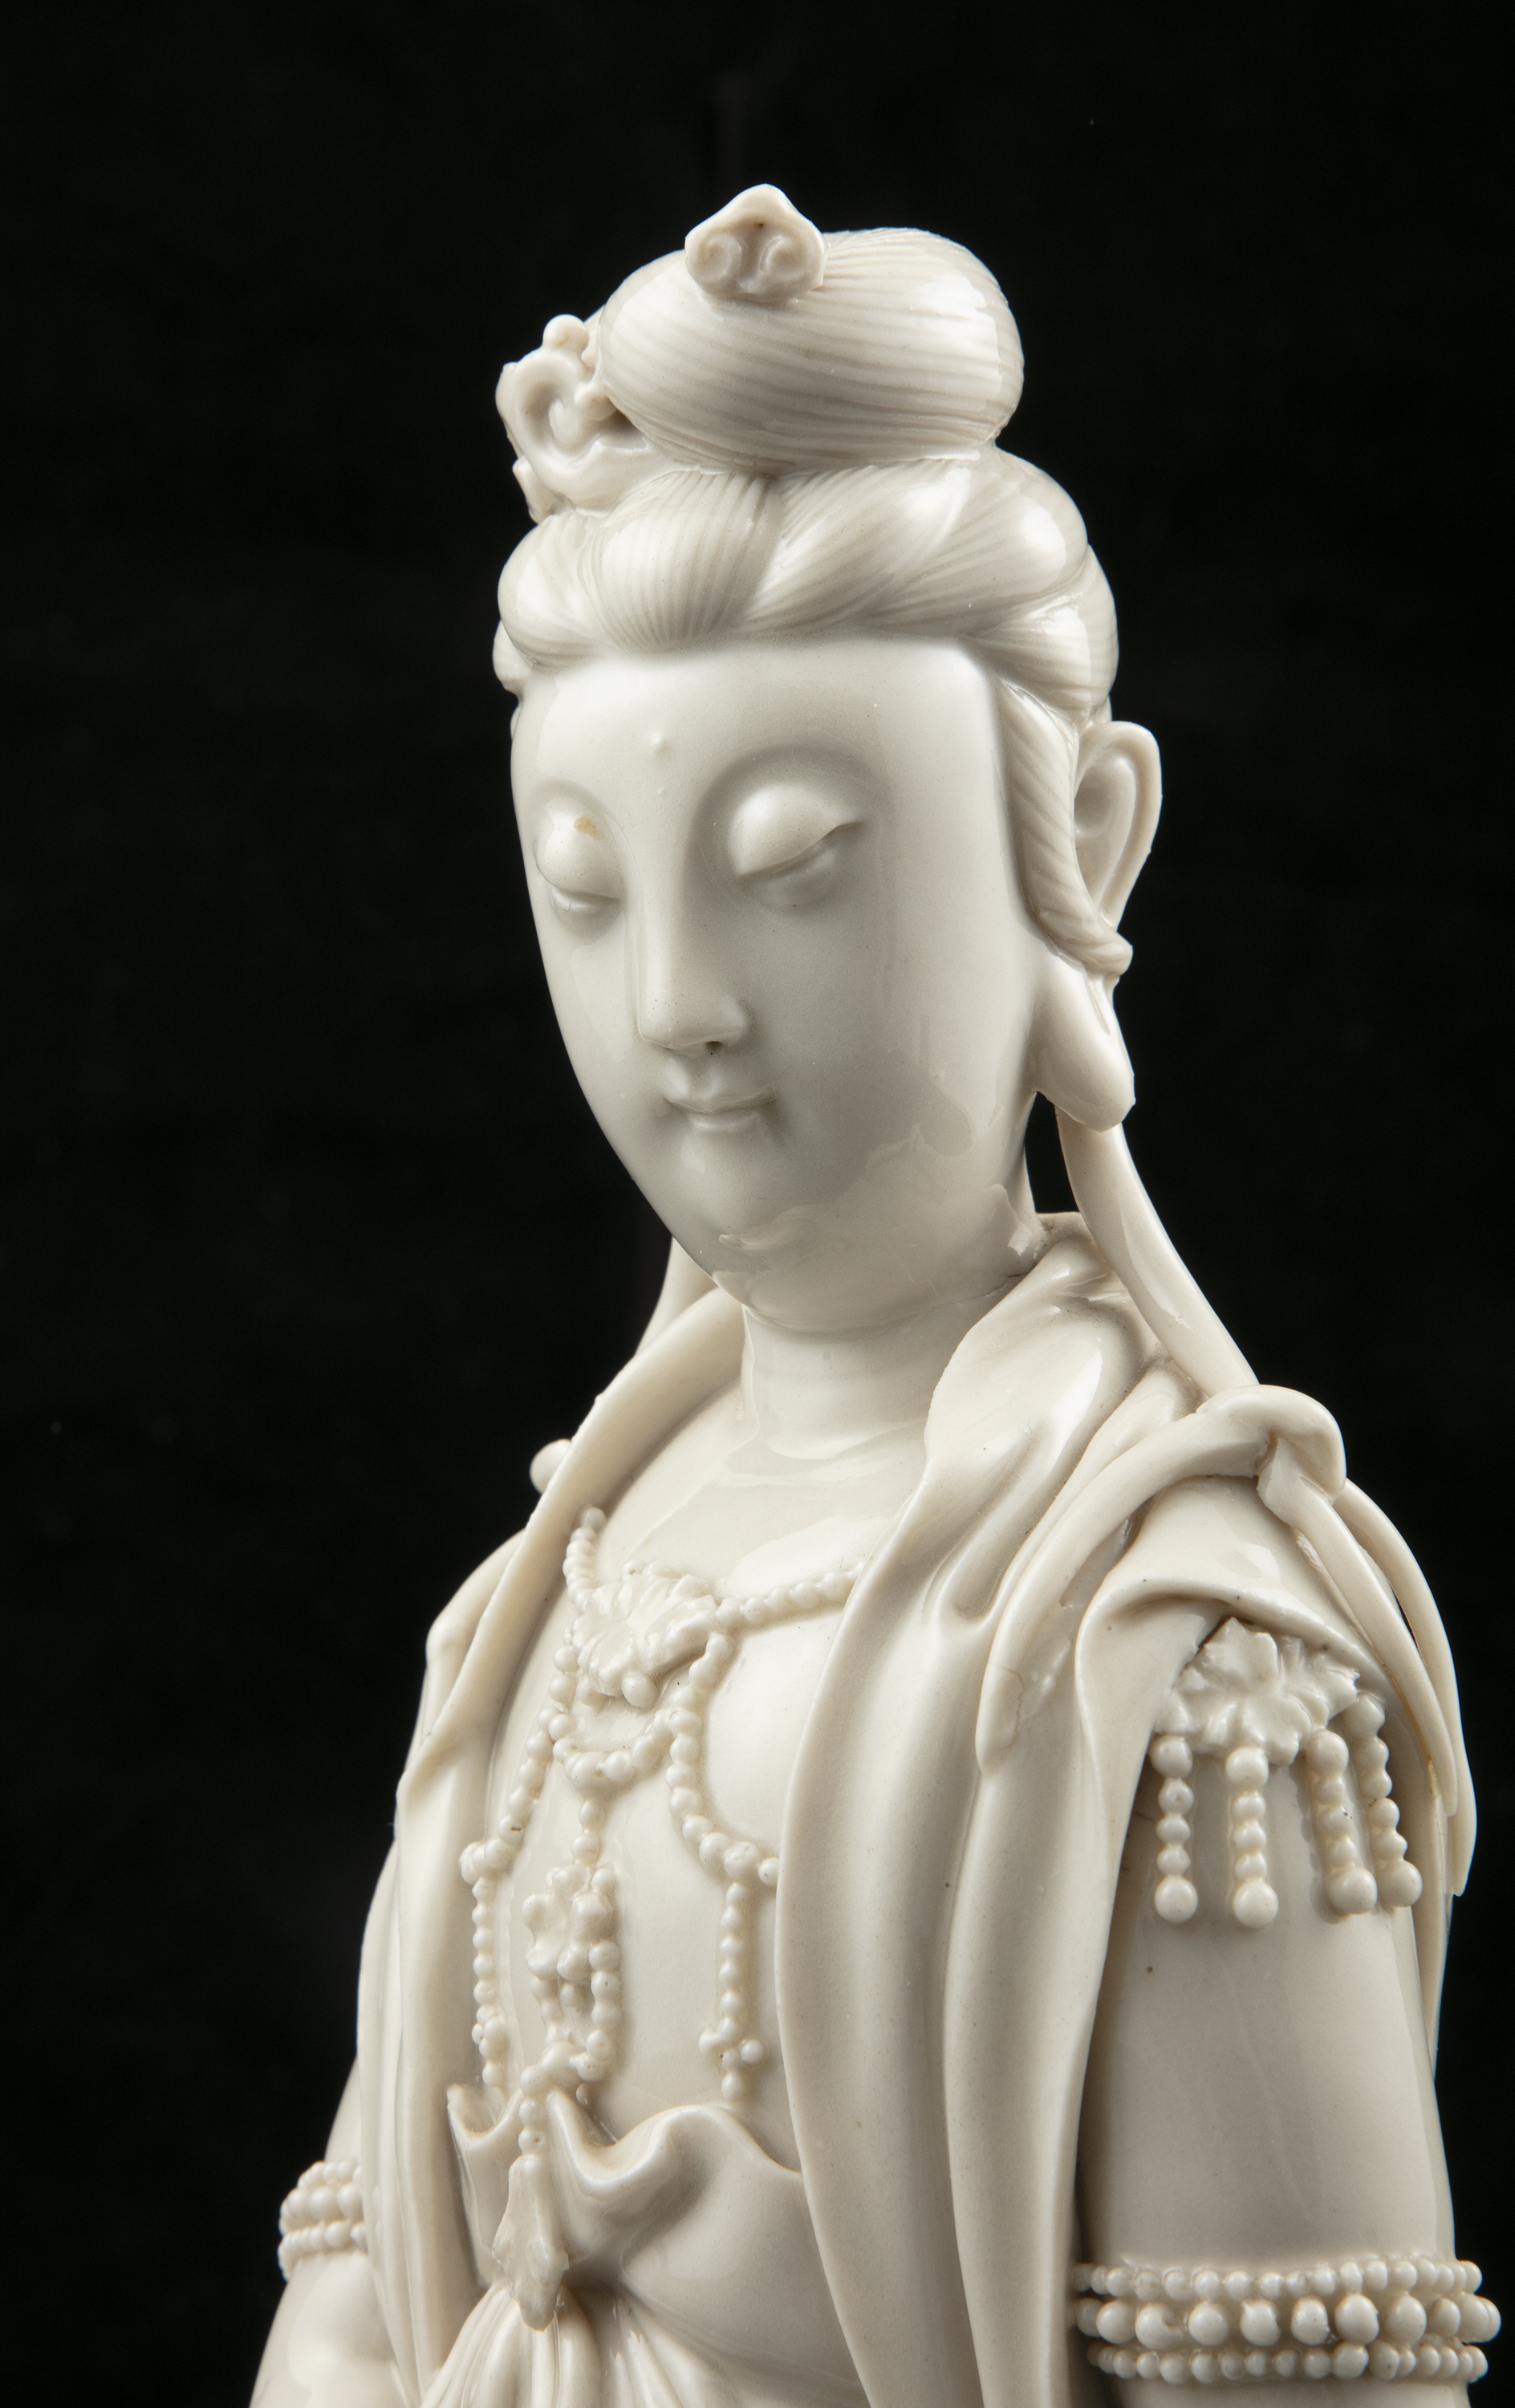 A LARGE DEHUA FIGURE OF A SEATED GUANYIN IMPRESSED WITH A HE CHAOZONG 何朝宗 CALABASH SHAPED SEAL - Image 21 of 48